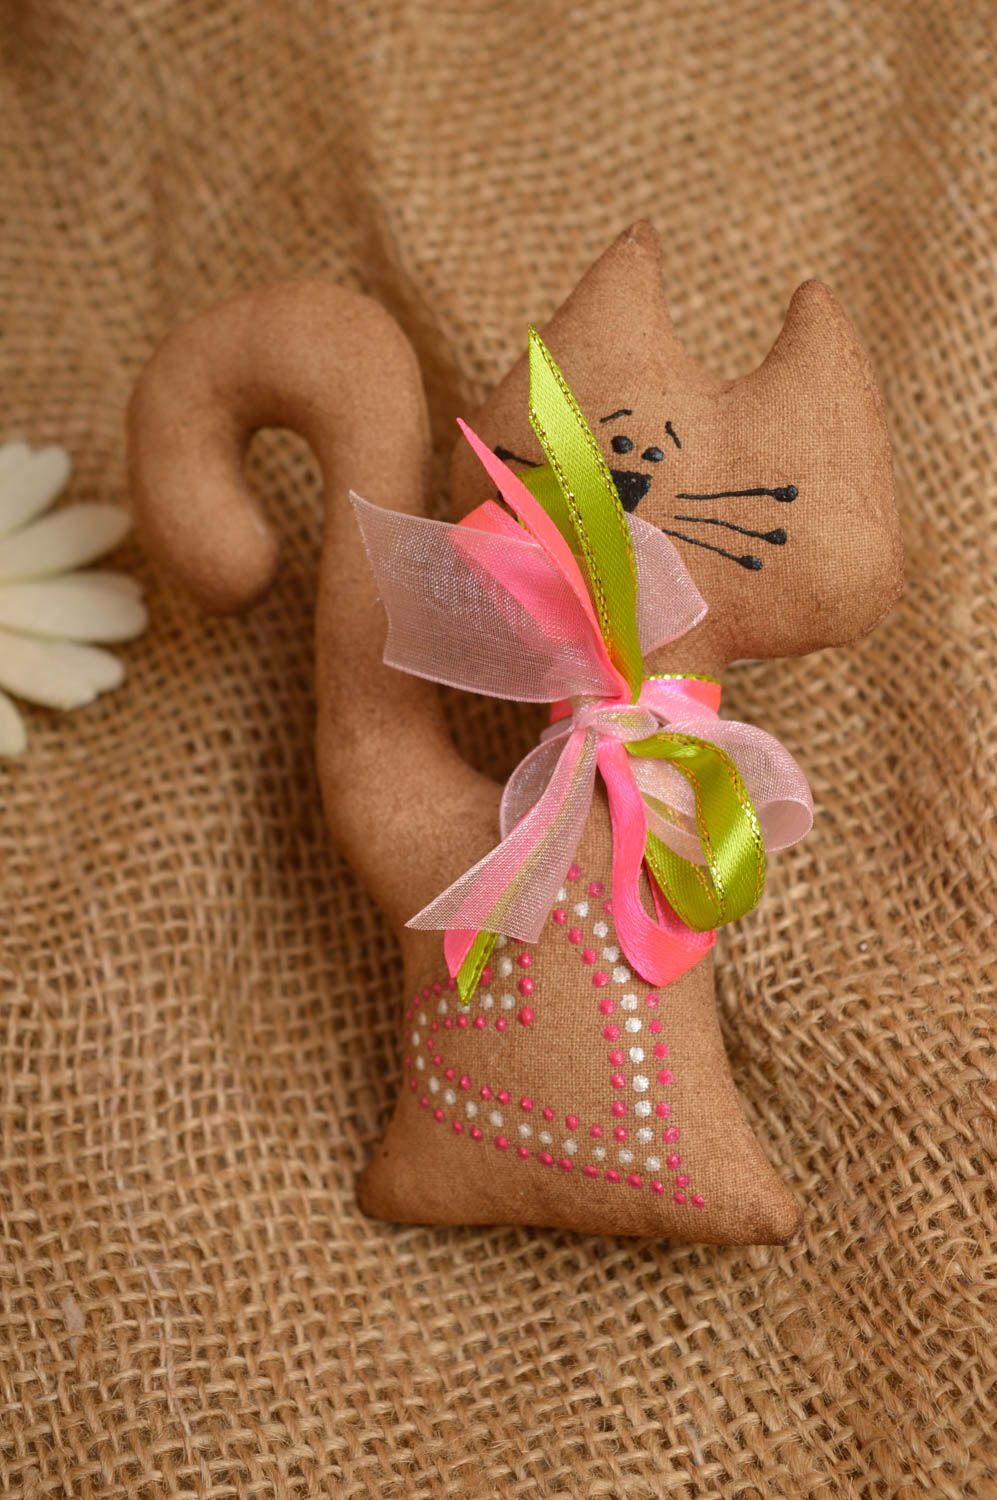 Homemade soft toy fridge magnet for decorative use only kitchen decor  photo 1